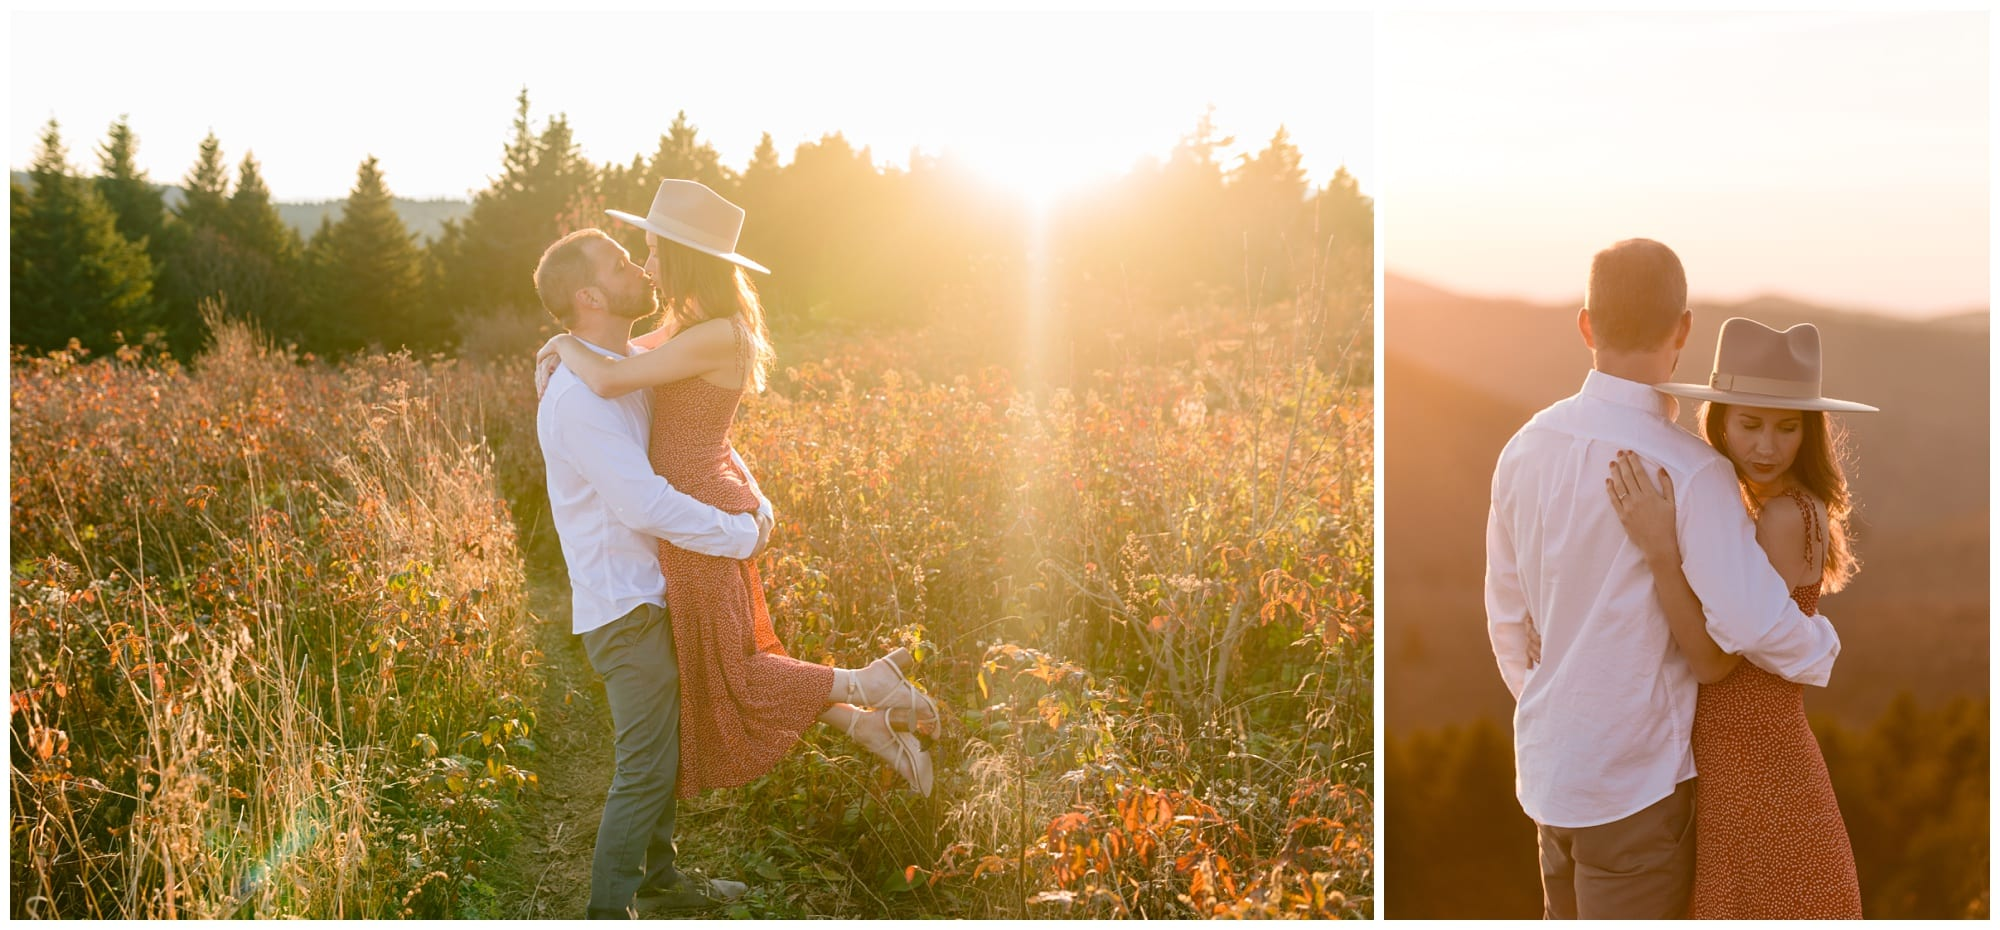 Engagement photos in a field in Asheville, NC.